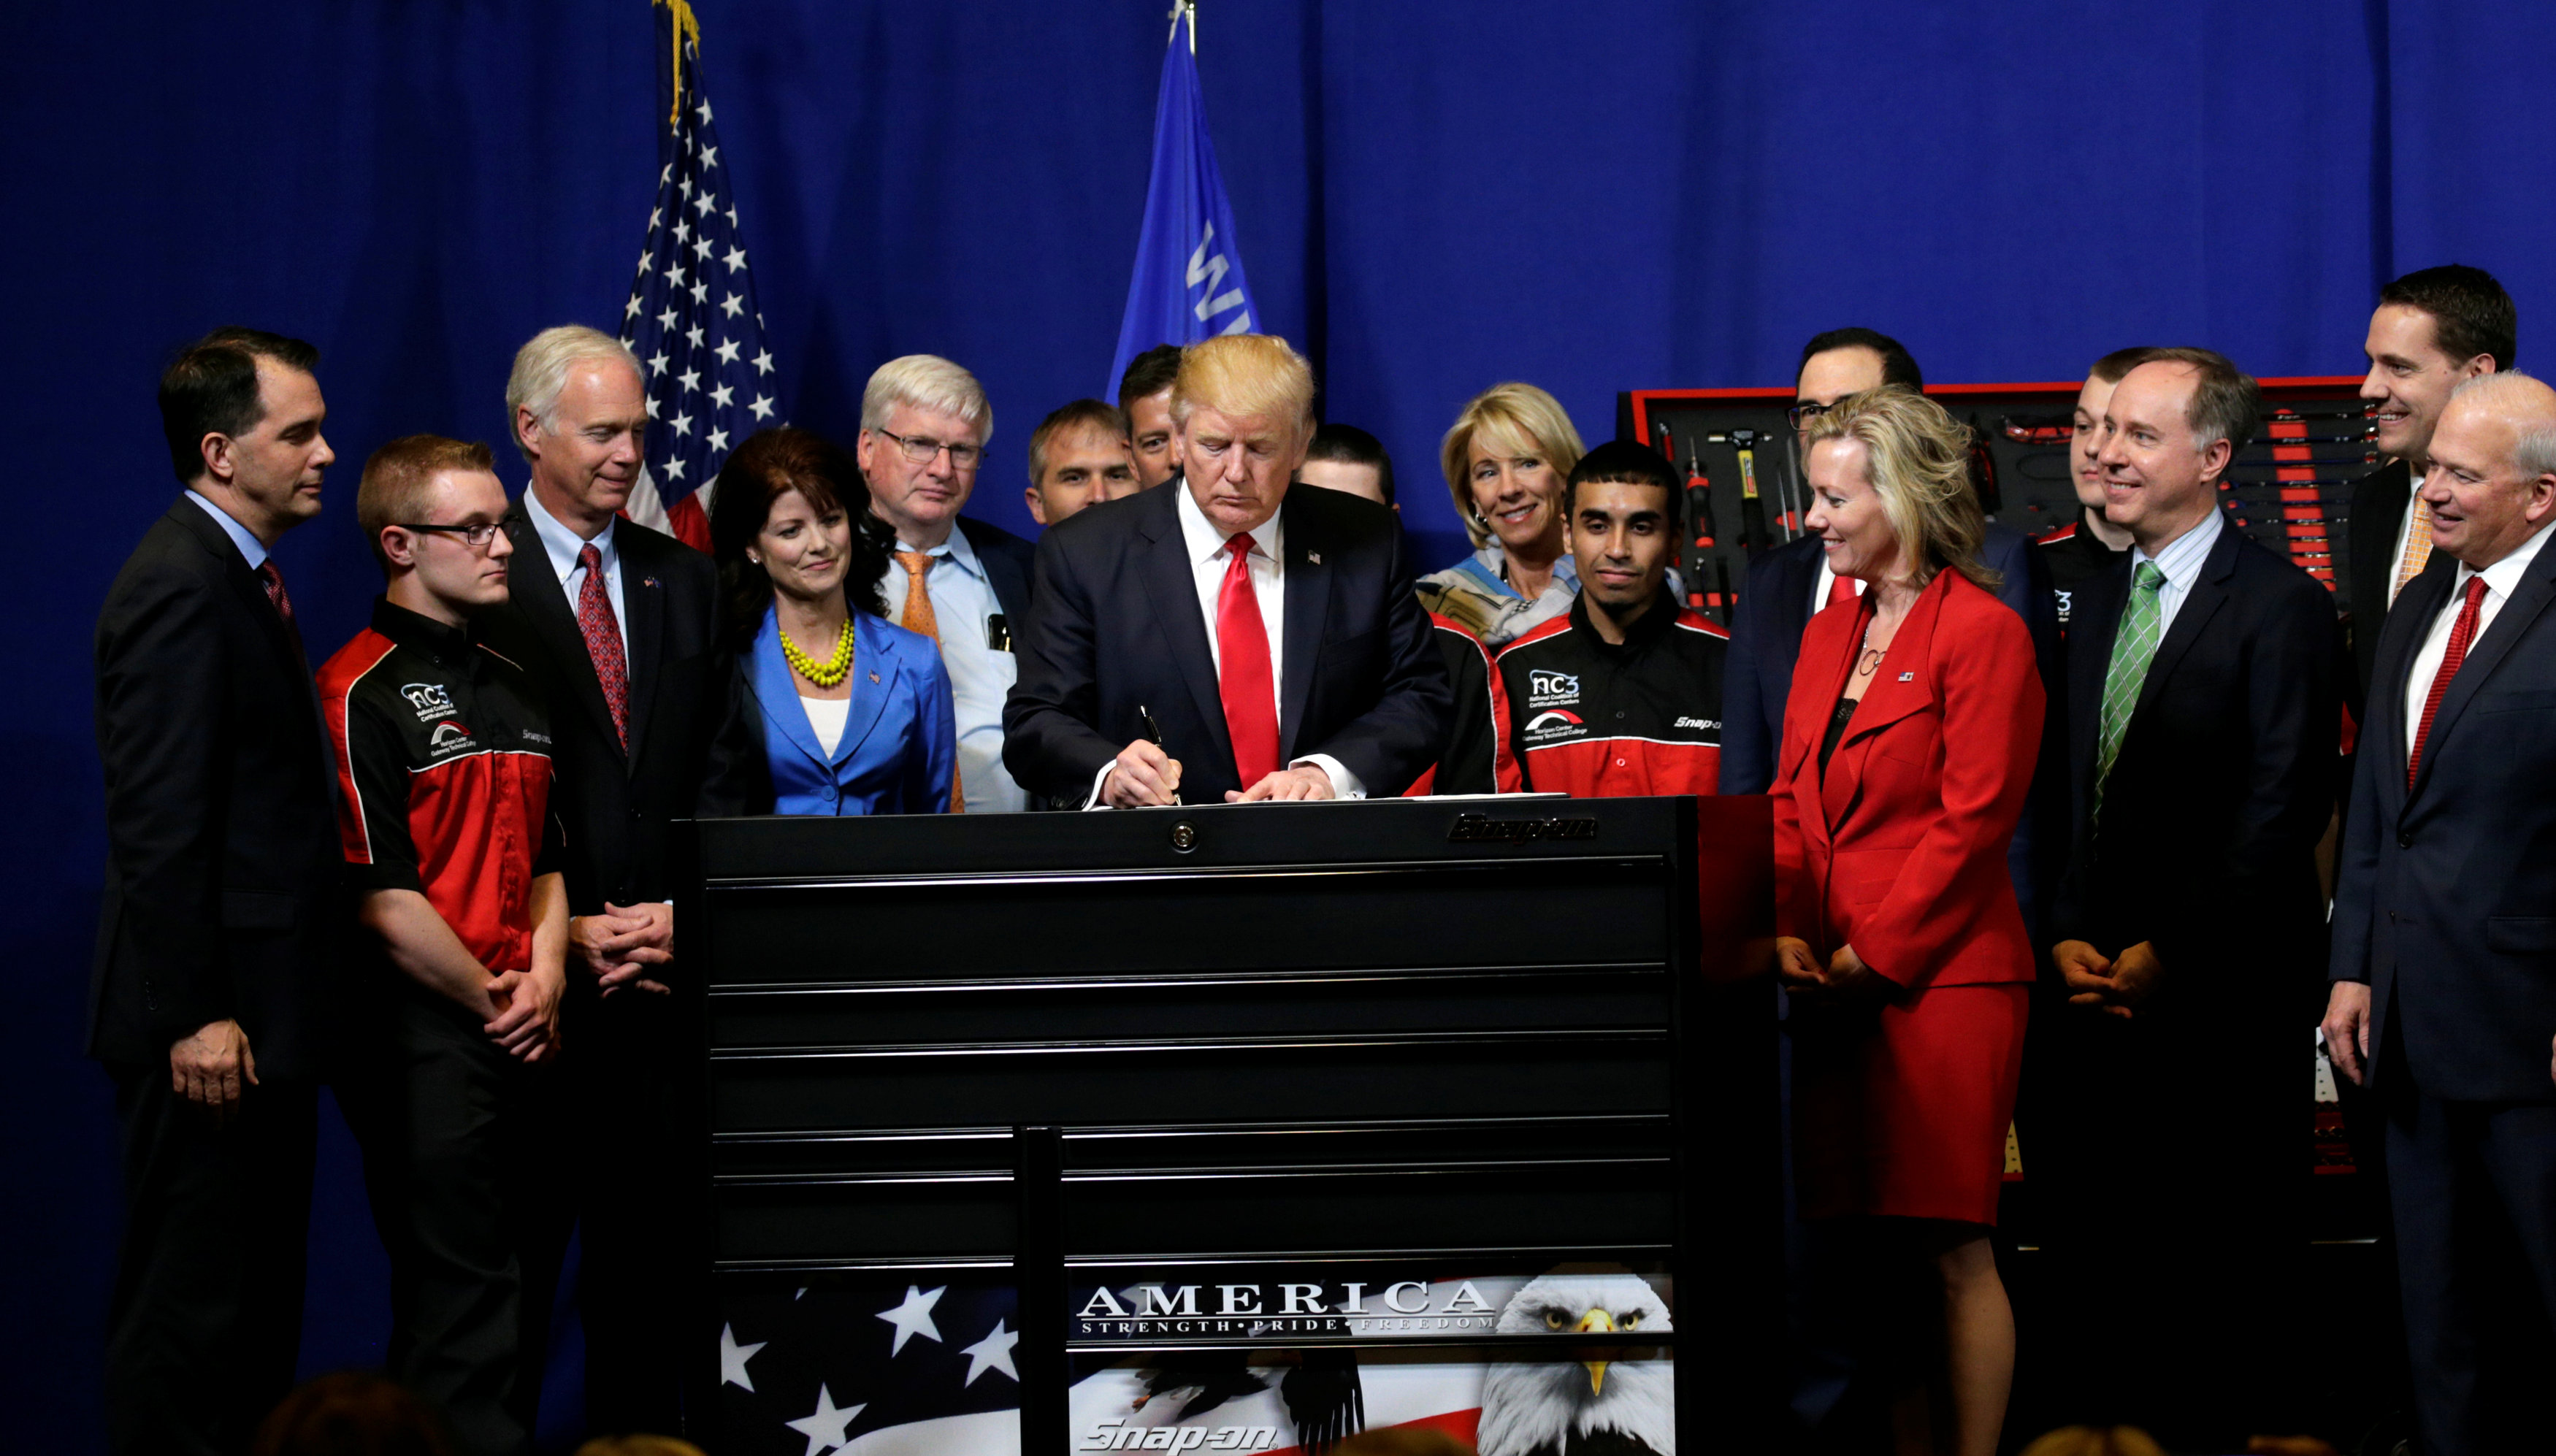 President Donald Trump signs an executive order directing federal agencies to recommend changes to a temporary visa program used to bring foreign workers to the United States to fill high-skilled jobs during a visit to the world headquarters of Snap-On Inc, a tool manufacturer in Kenosha, Wis., on April 18, 2017.  (REUTERS/Kevin Lamarque)